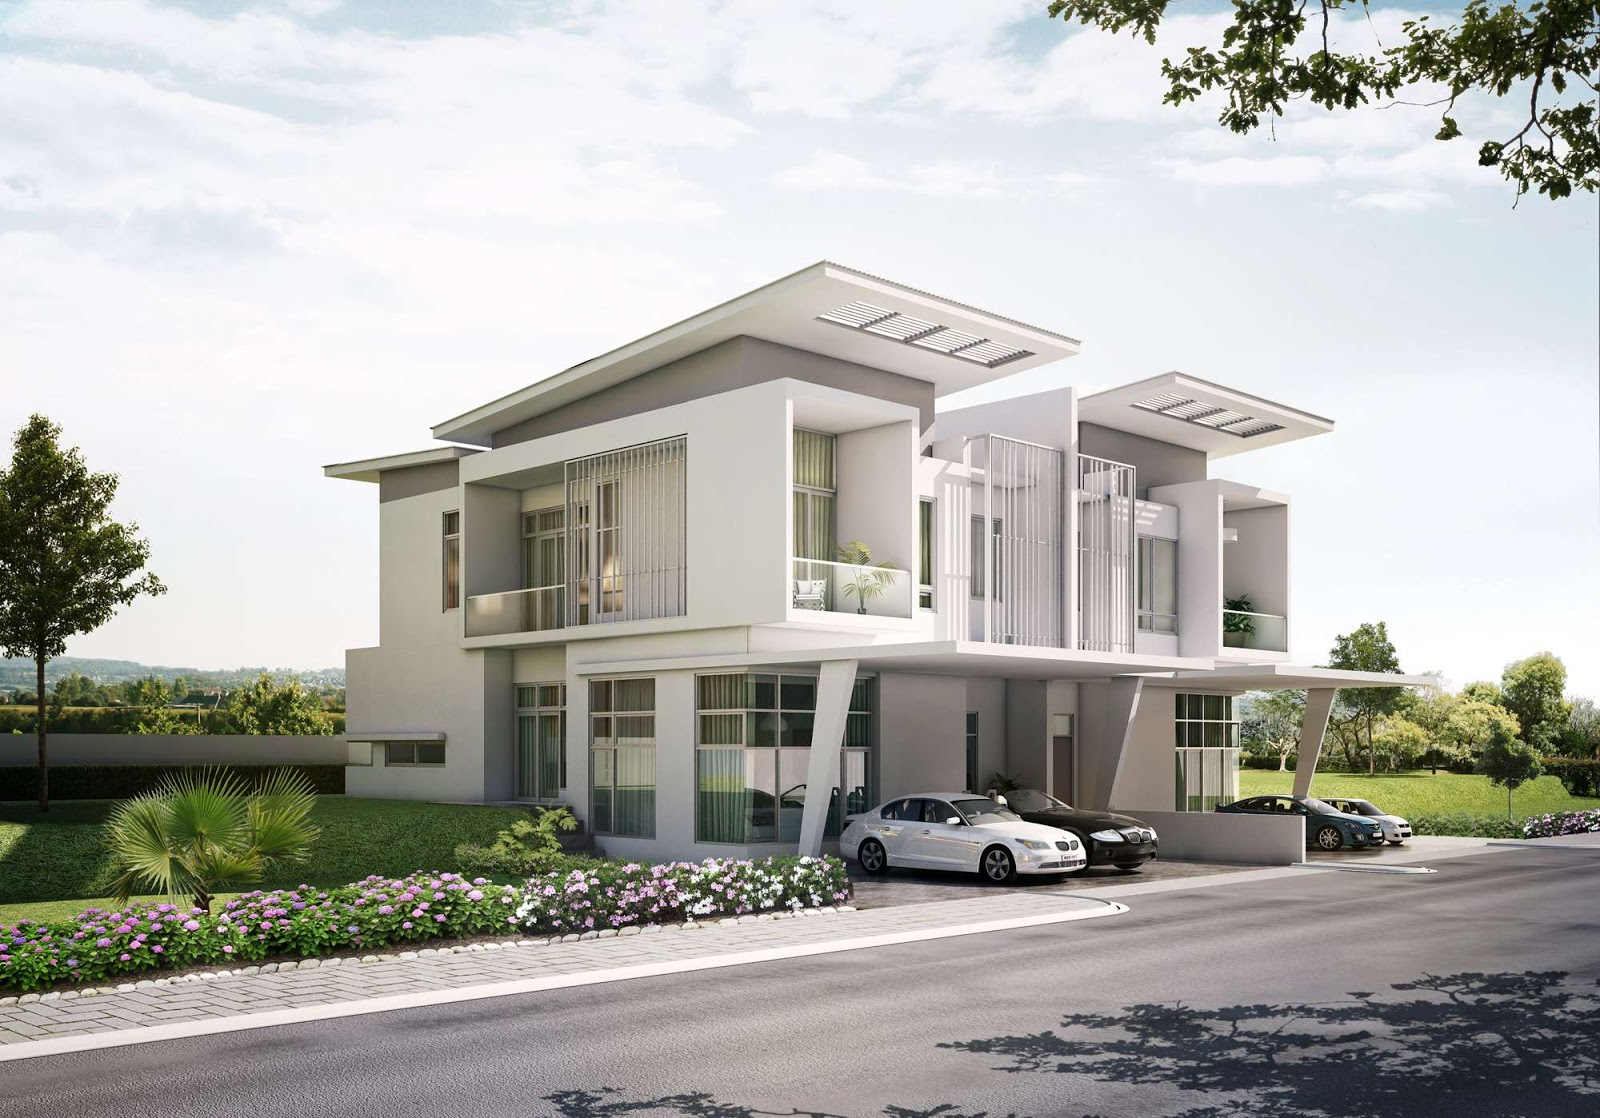 New home designs latest singapore modern homes exterior for Front house entrance design ideas